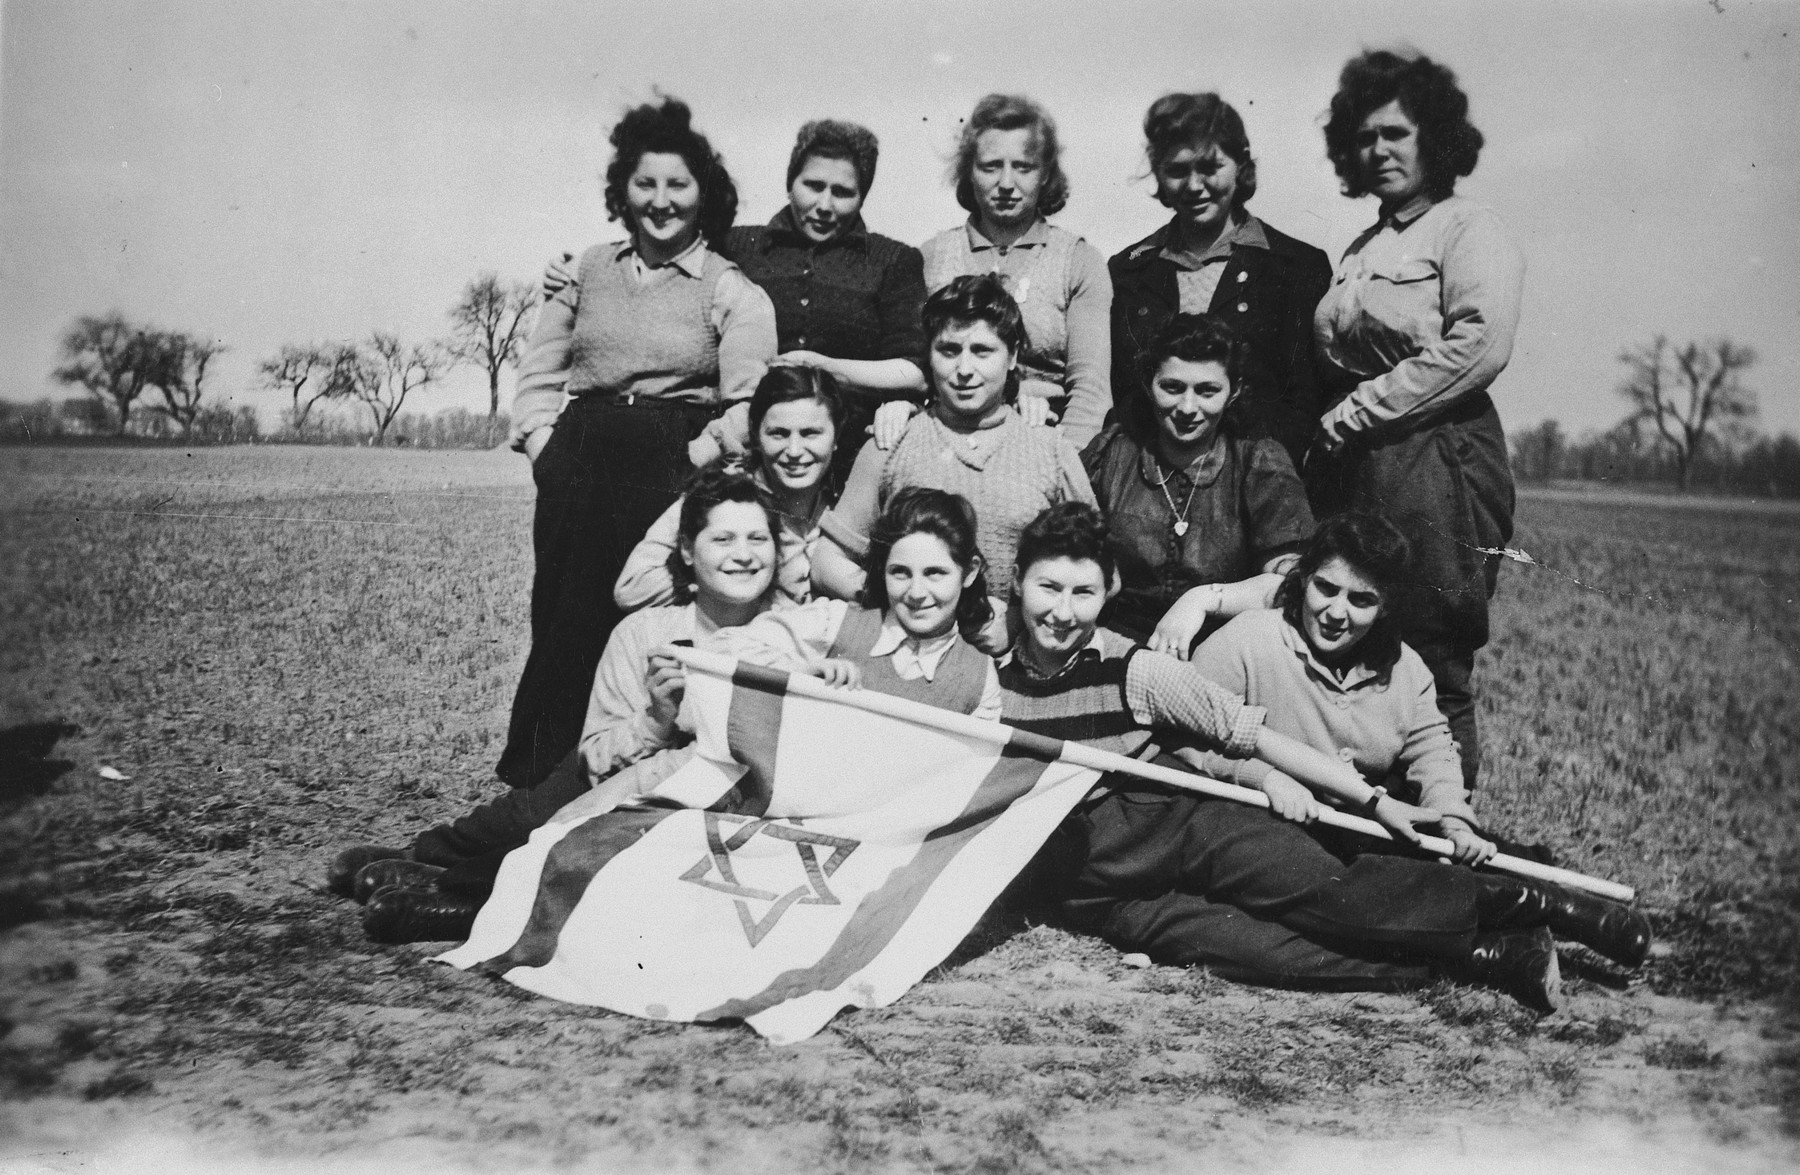 A group of young Jewish DPs who are seeking to immigrate to Palestine illegally, pose outside in a field with a Zionist flag.  Pictured in the front row from left to right are Kicia, Renia Klugman, Sabina Szeps, Sara Klugman; middle row: Ester Goldschmidt, Mina Kokodinska, Hanka Wiernik Schlesinger; top row: Goldi Silberstein, unknown, Dora, unknown, Bracha.